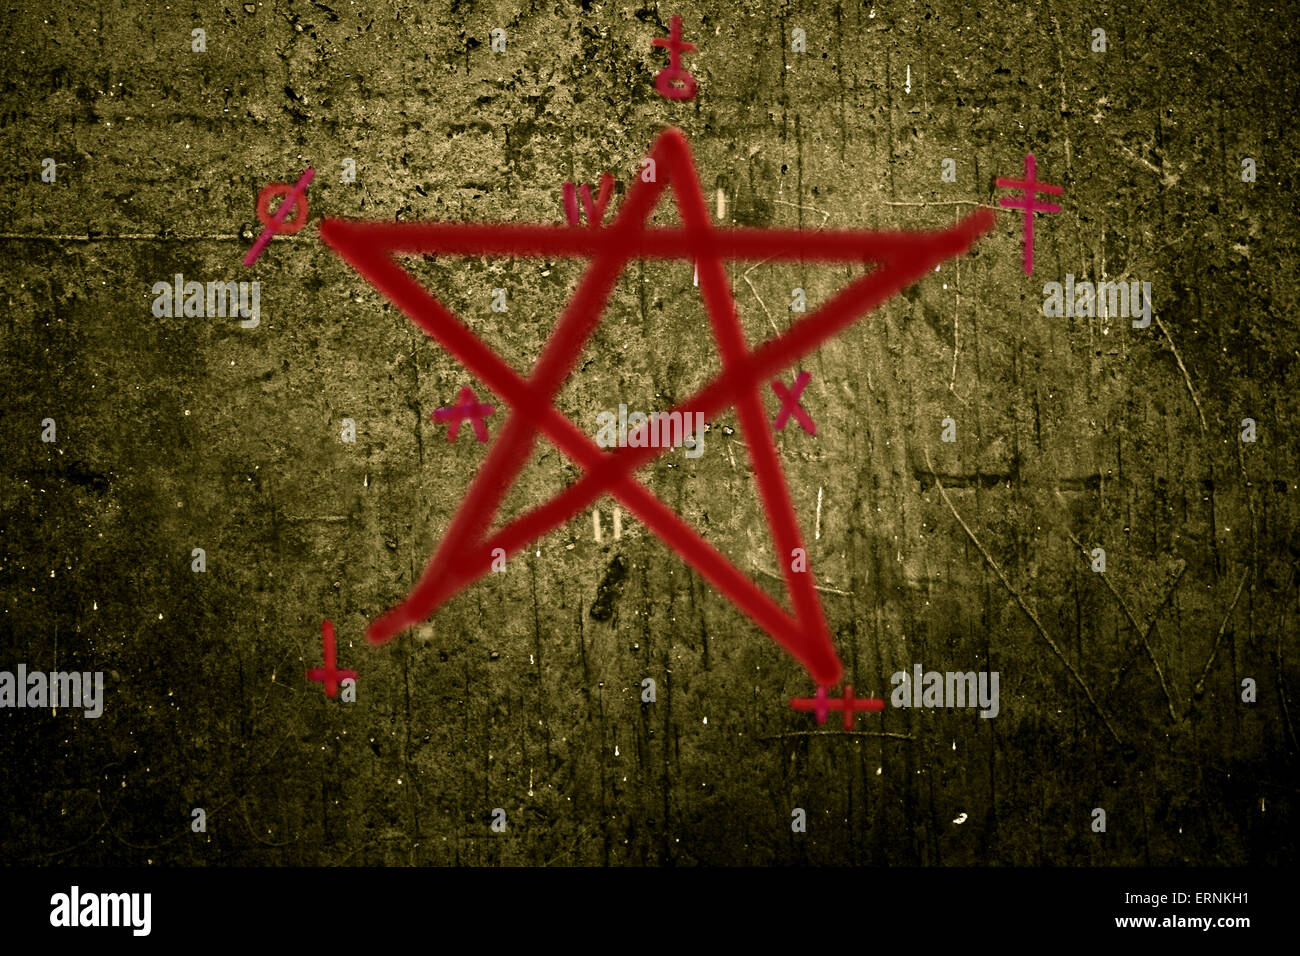 Altered photo of a red pentagram with symbols on a rough concrete wall - Stock Image